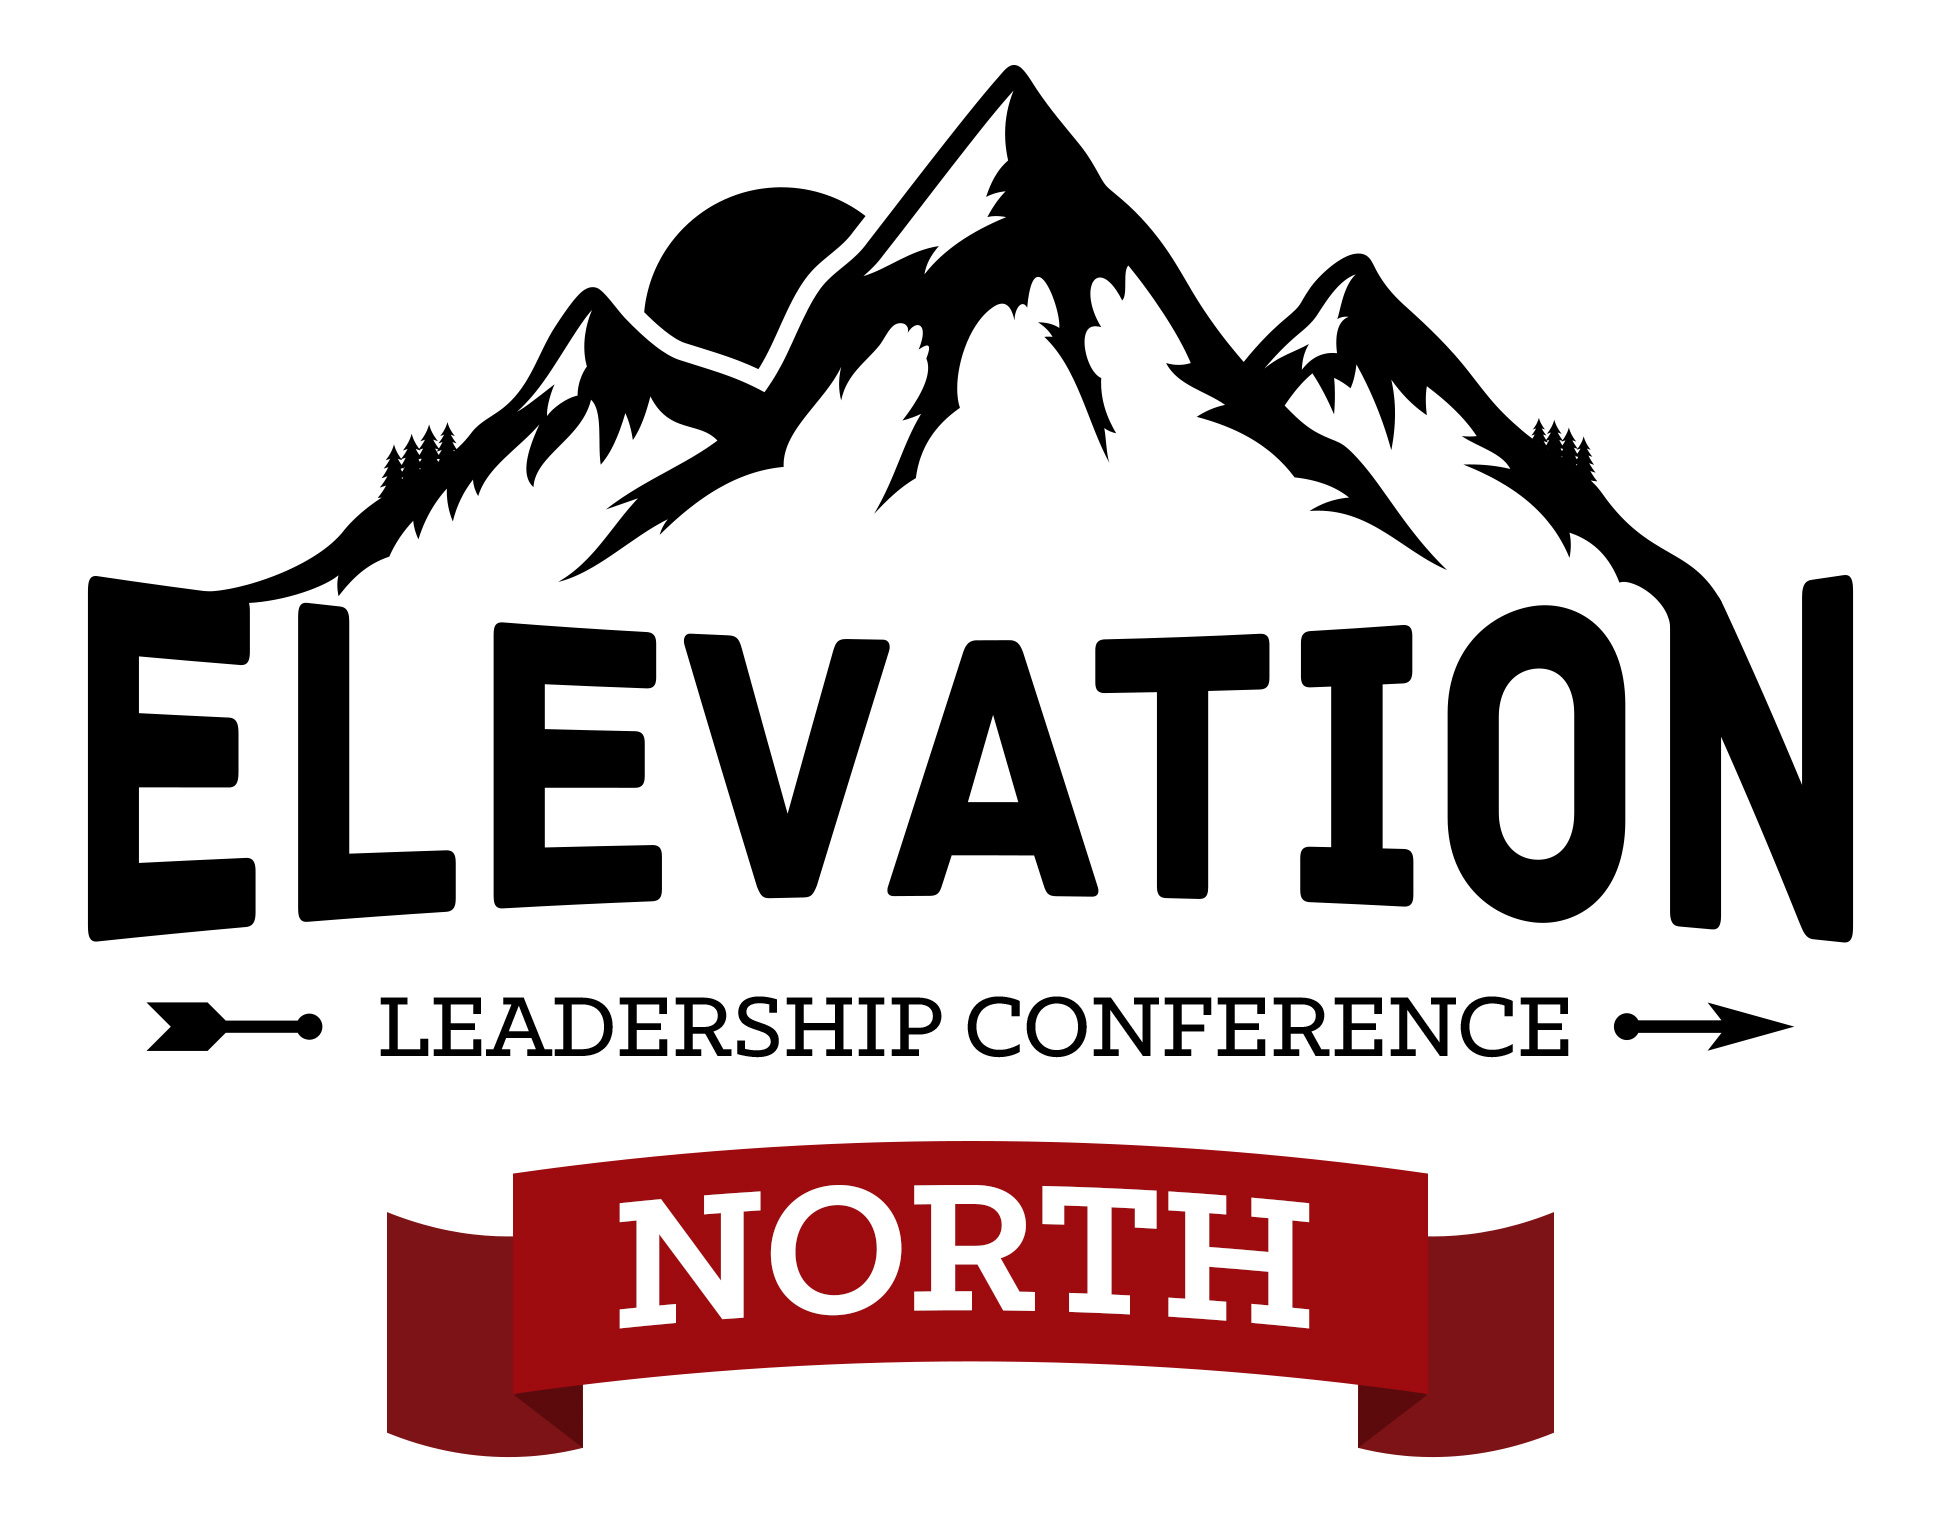 Elevation-Logo-NORTH.jpg